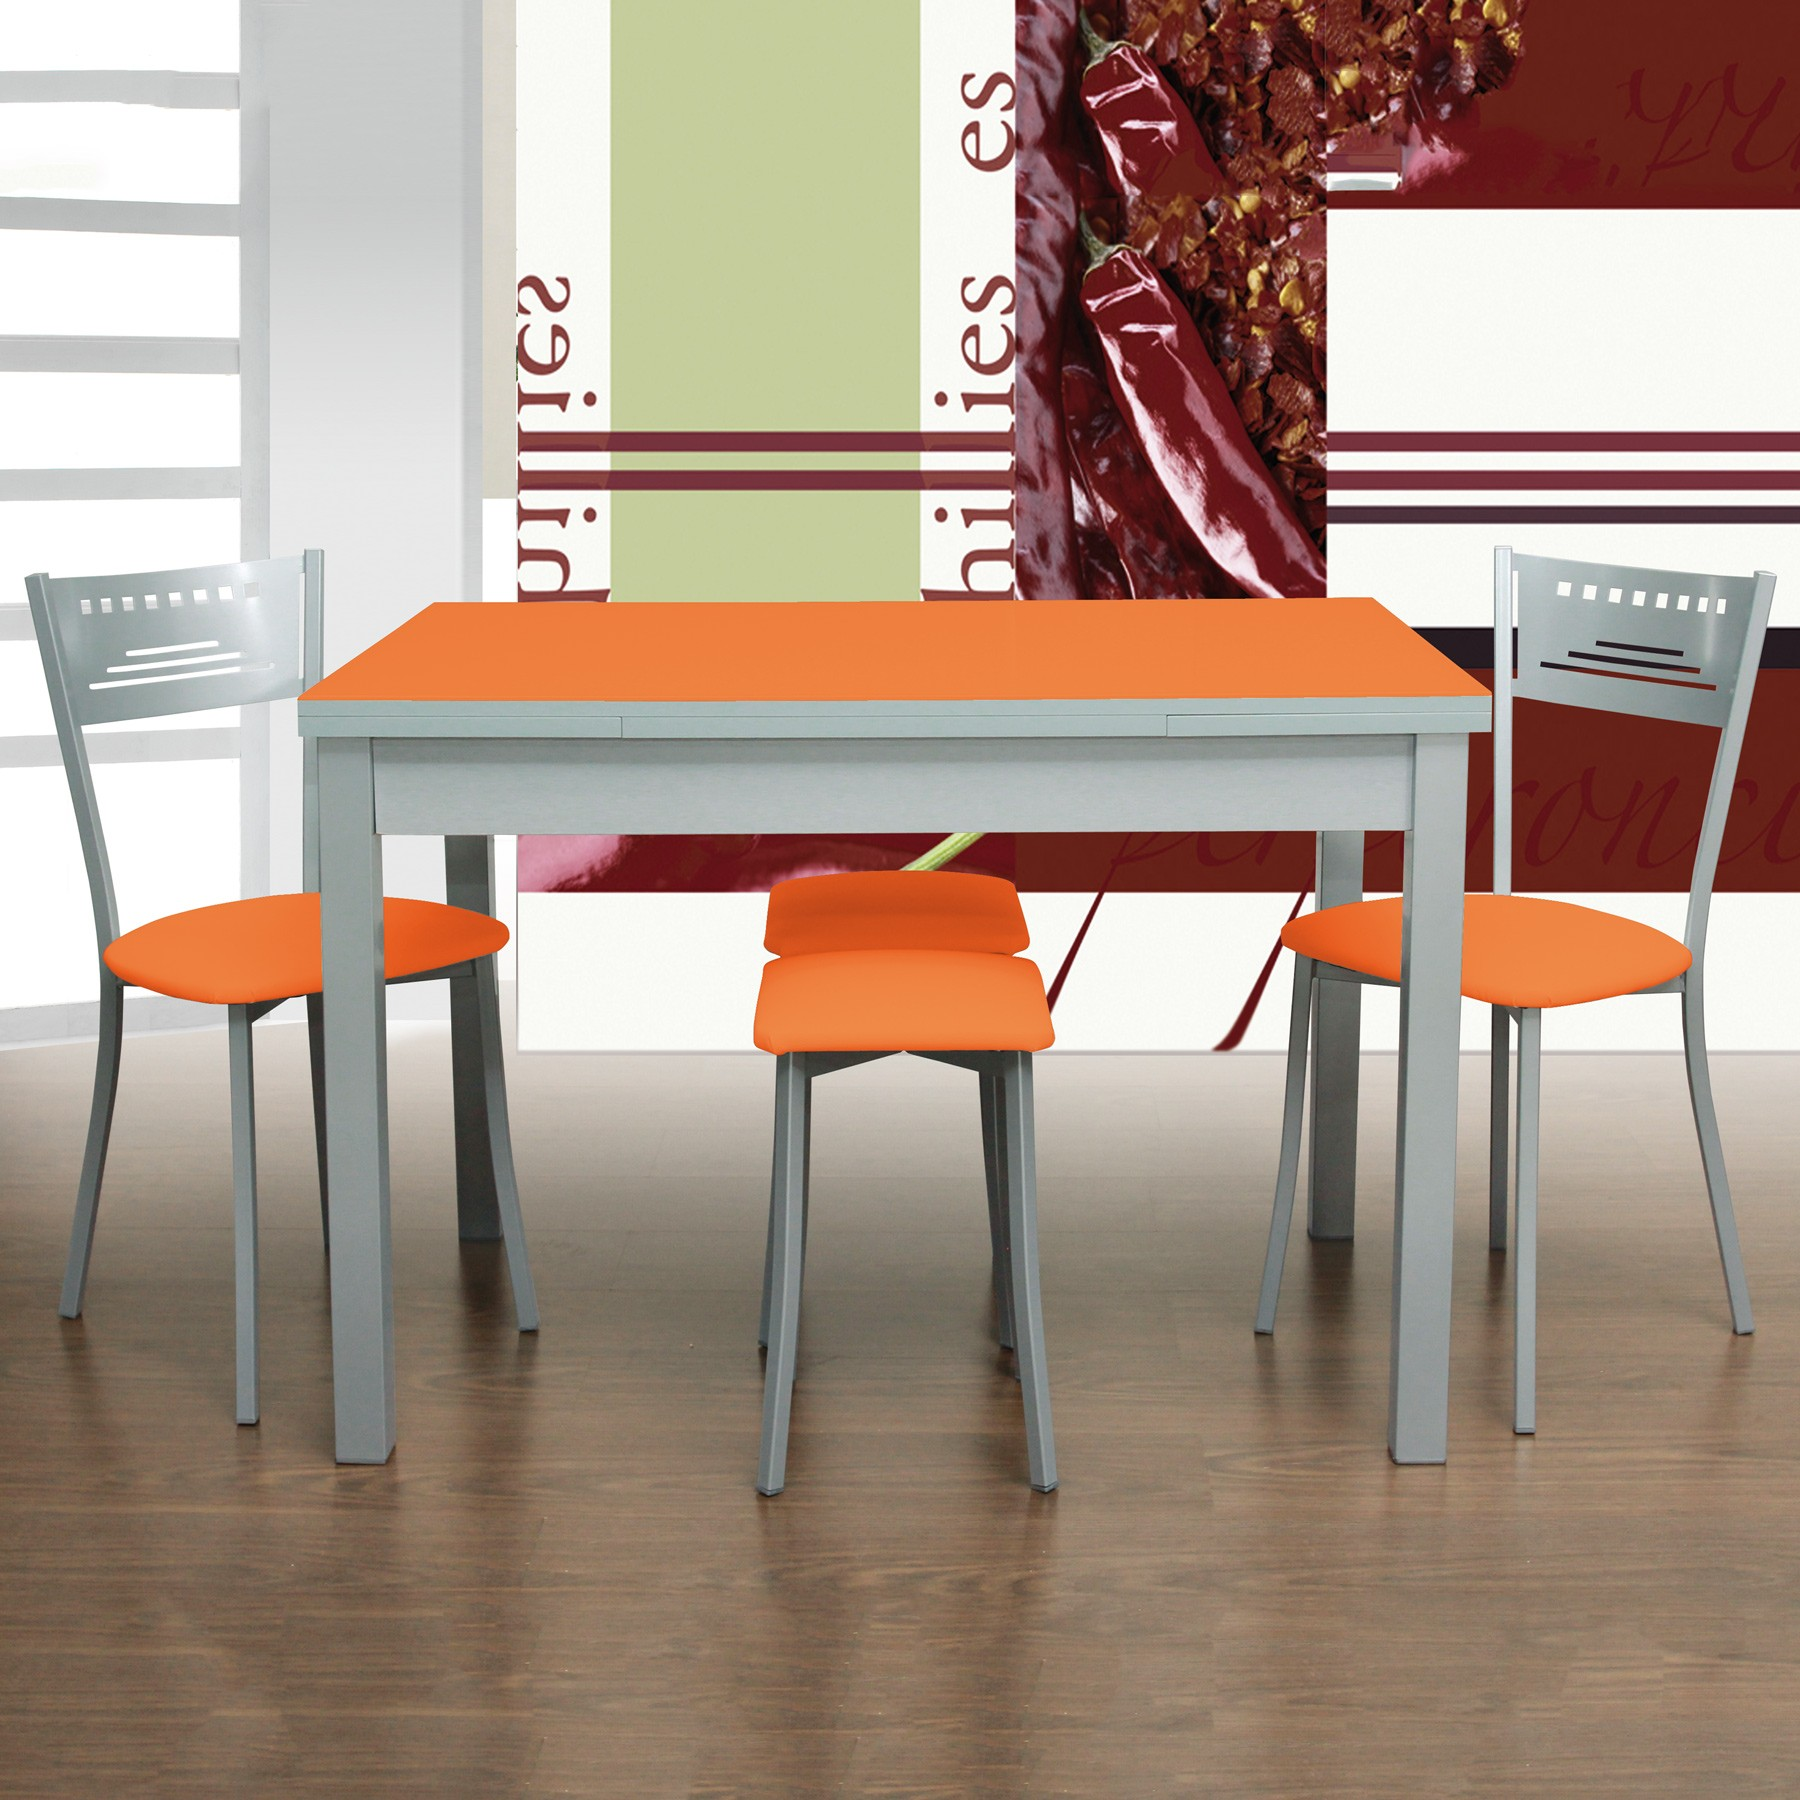 Pack mesa de cocina sillas y o taburetes mod orange for Mesas y sillas baratas